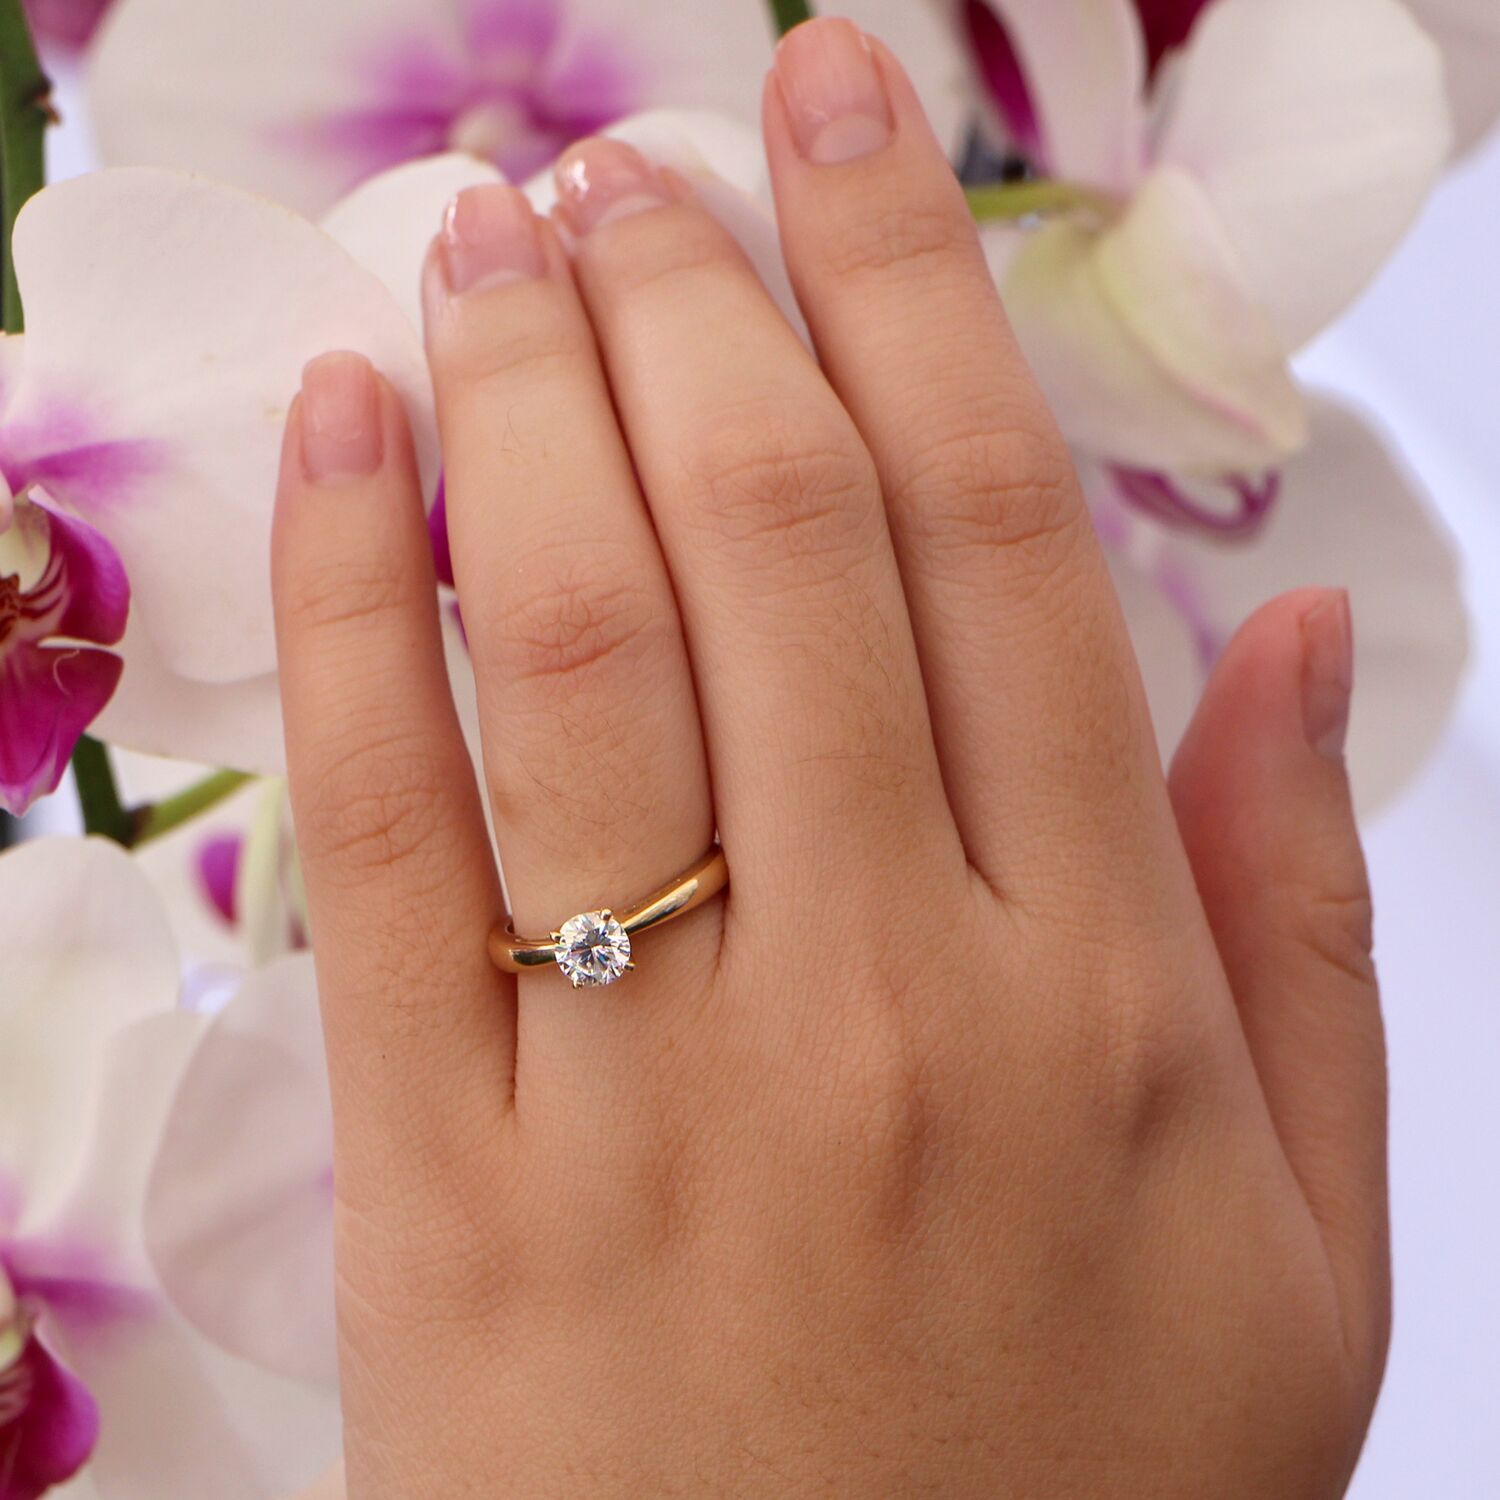 Simply Stunning Engagement Rings